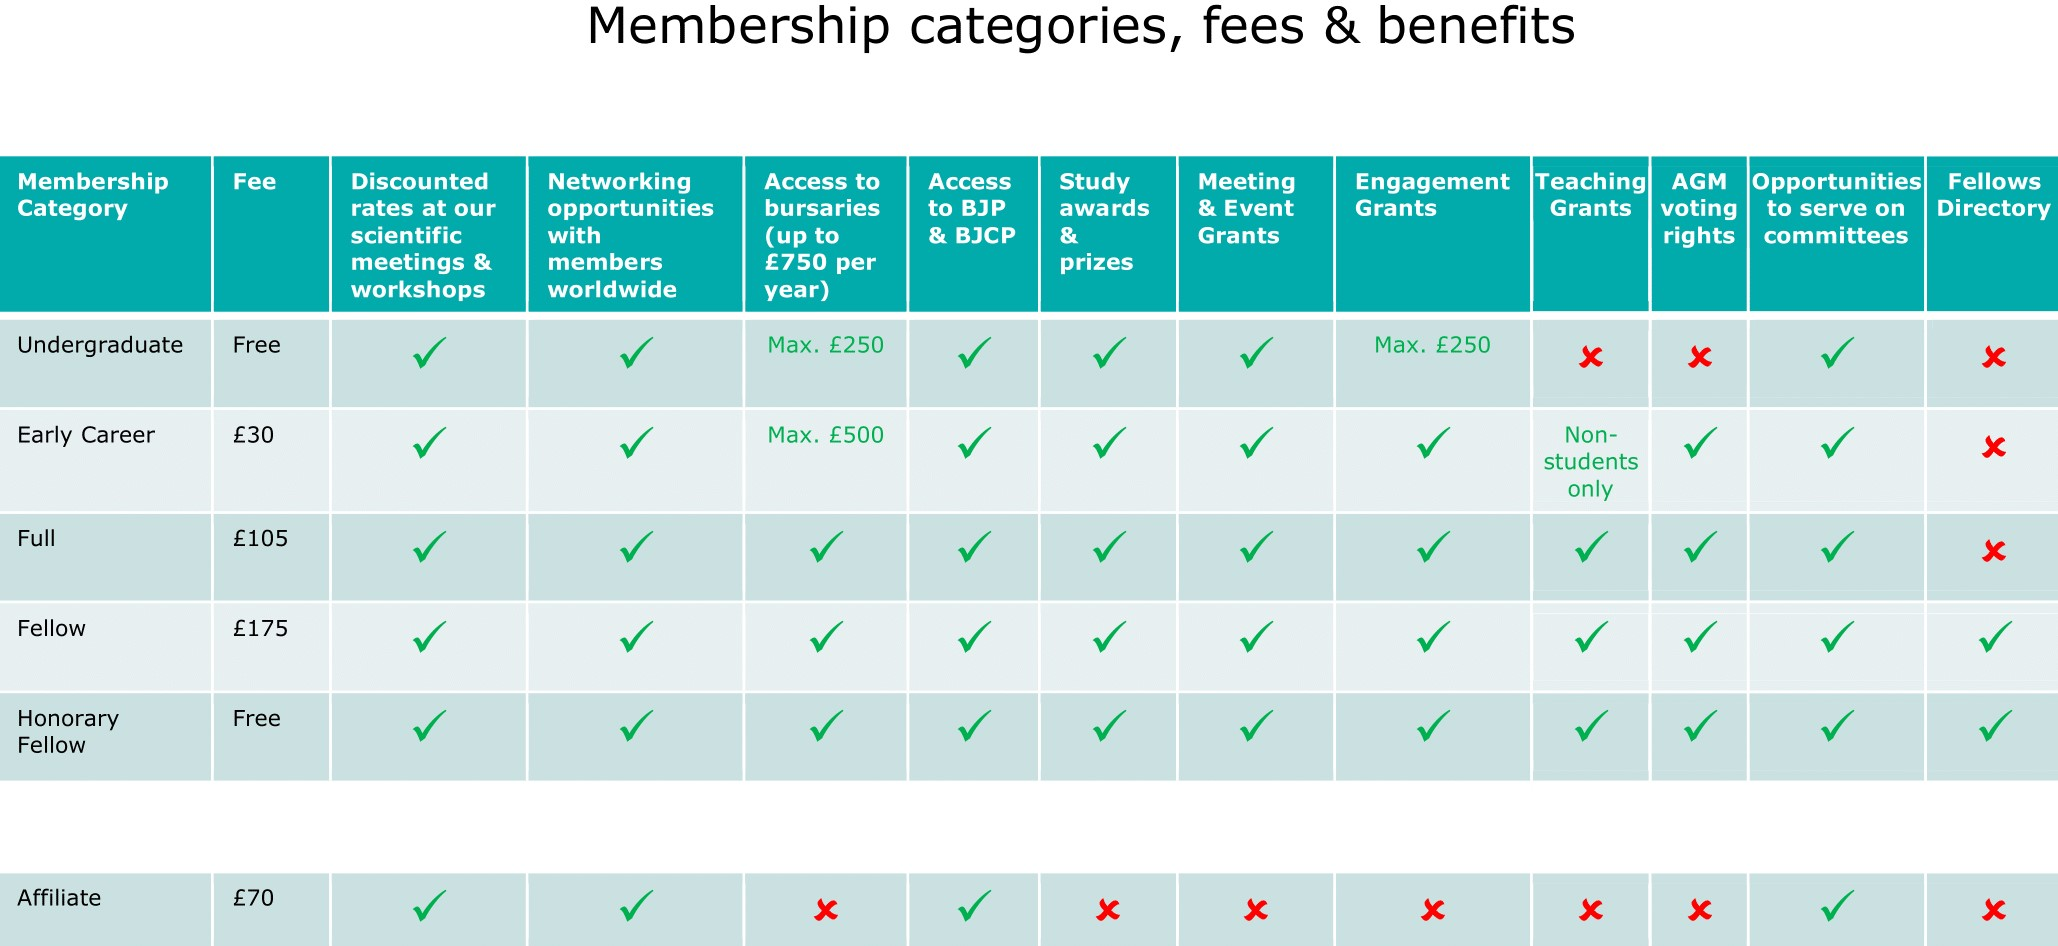 Membership-categories-fees-benefits-final.jpg